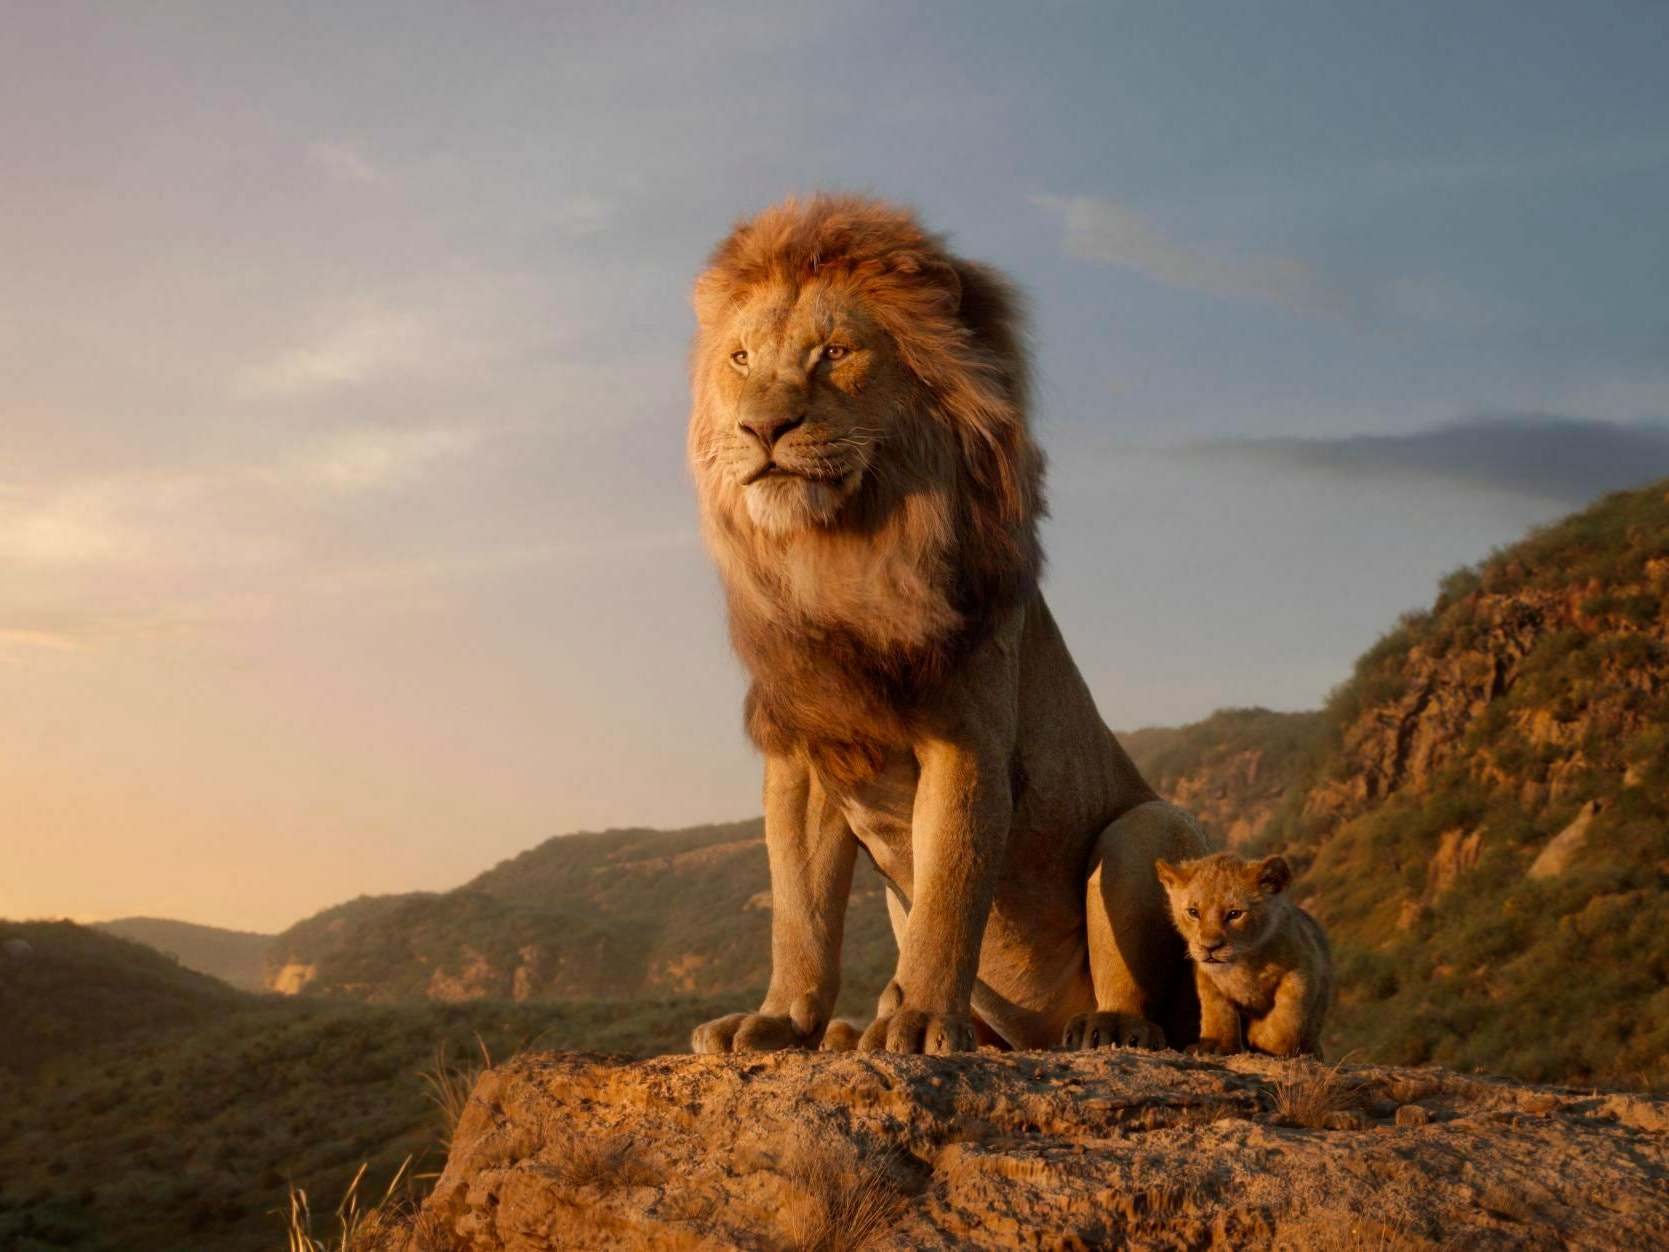 The Lion King review: Disney's live-action remake is a technological marvel of unprecedented hyperrealism